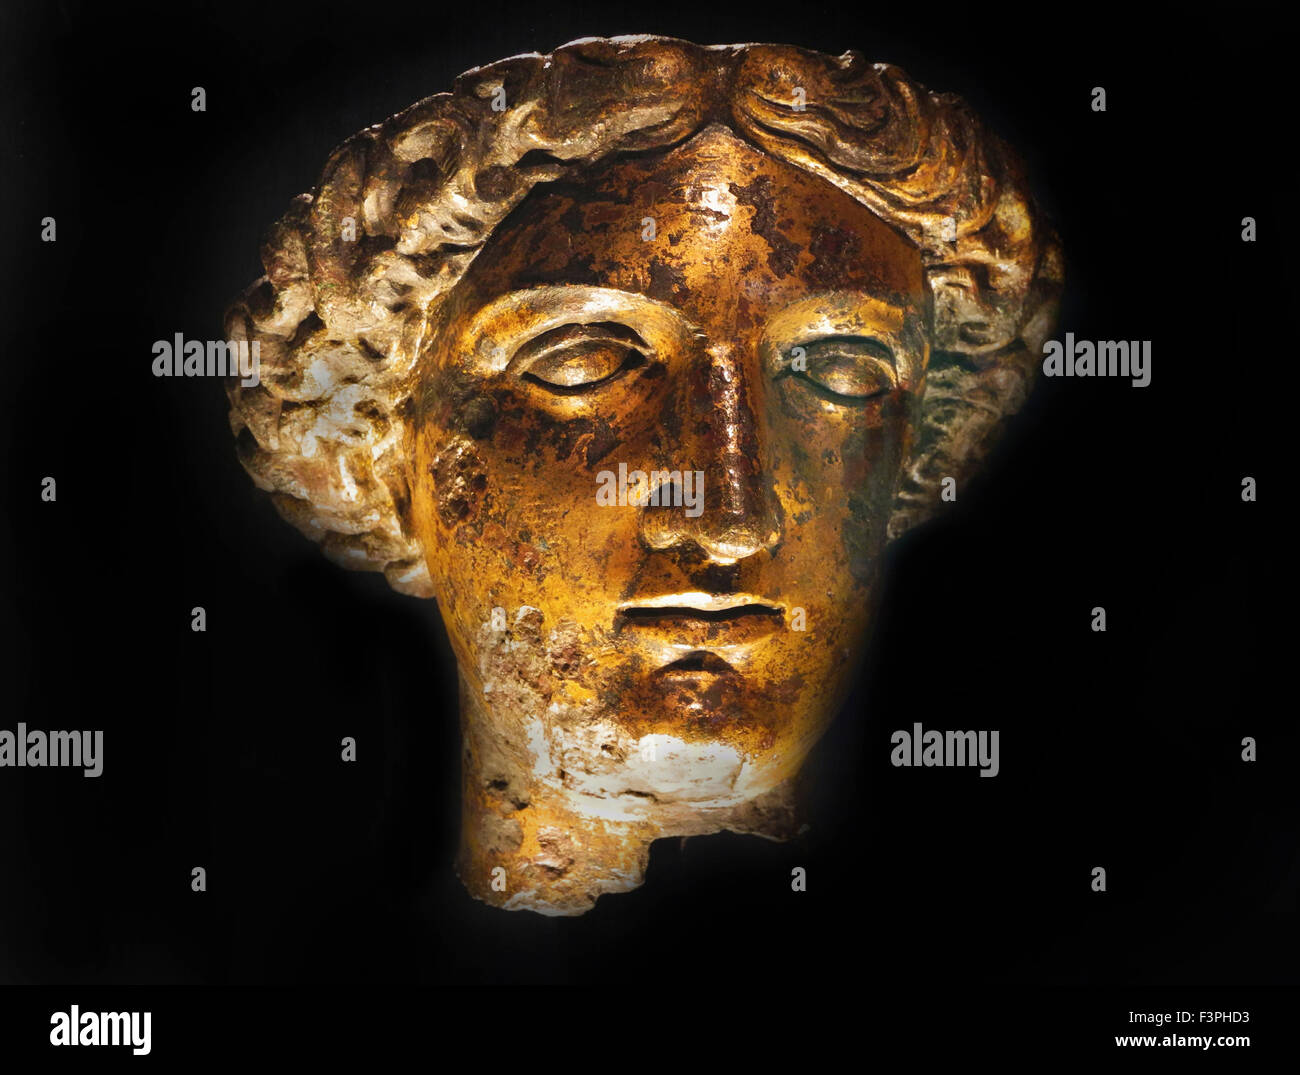 Head of Roman Goddess Sulis Minerva from the Temple Courtyard of the Roman Baths at Bath in the UK. - Stock Image